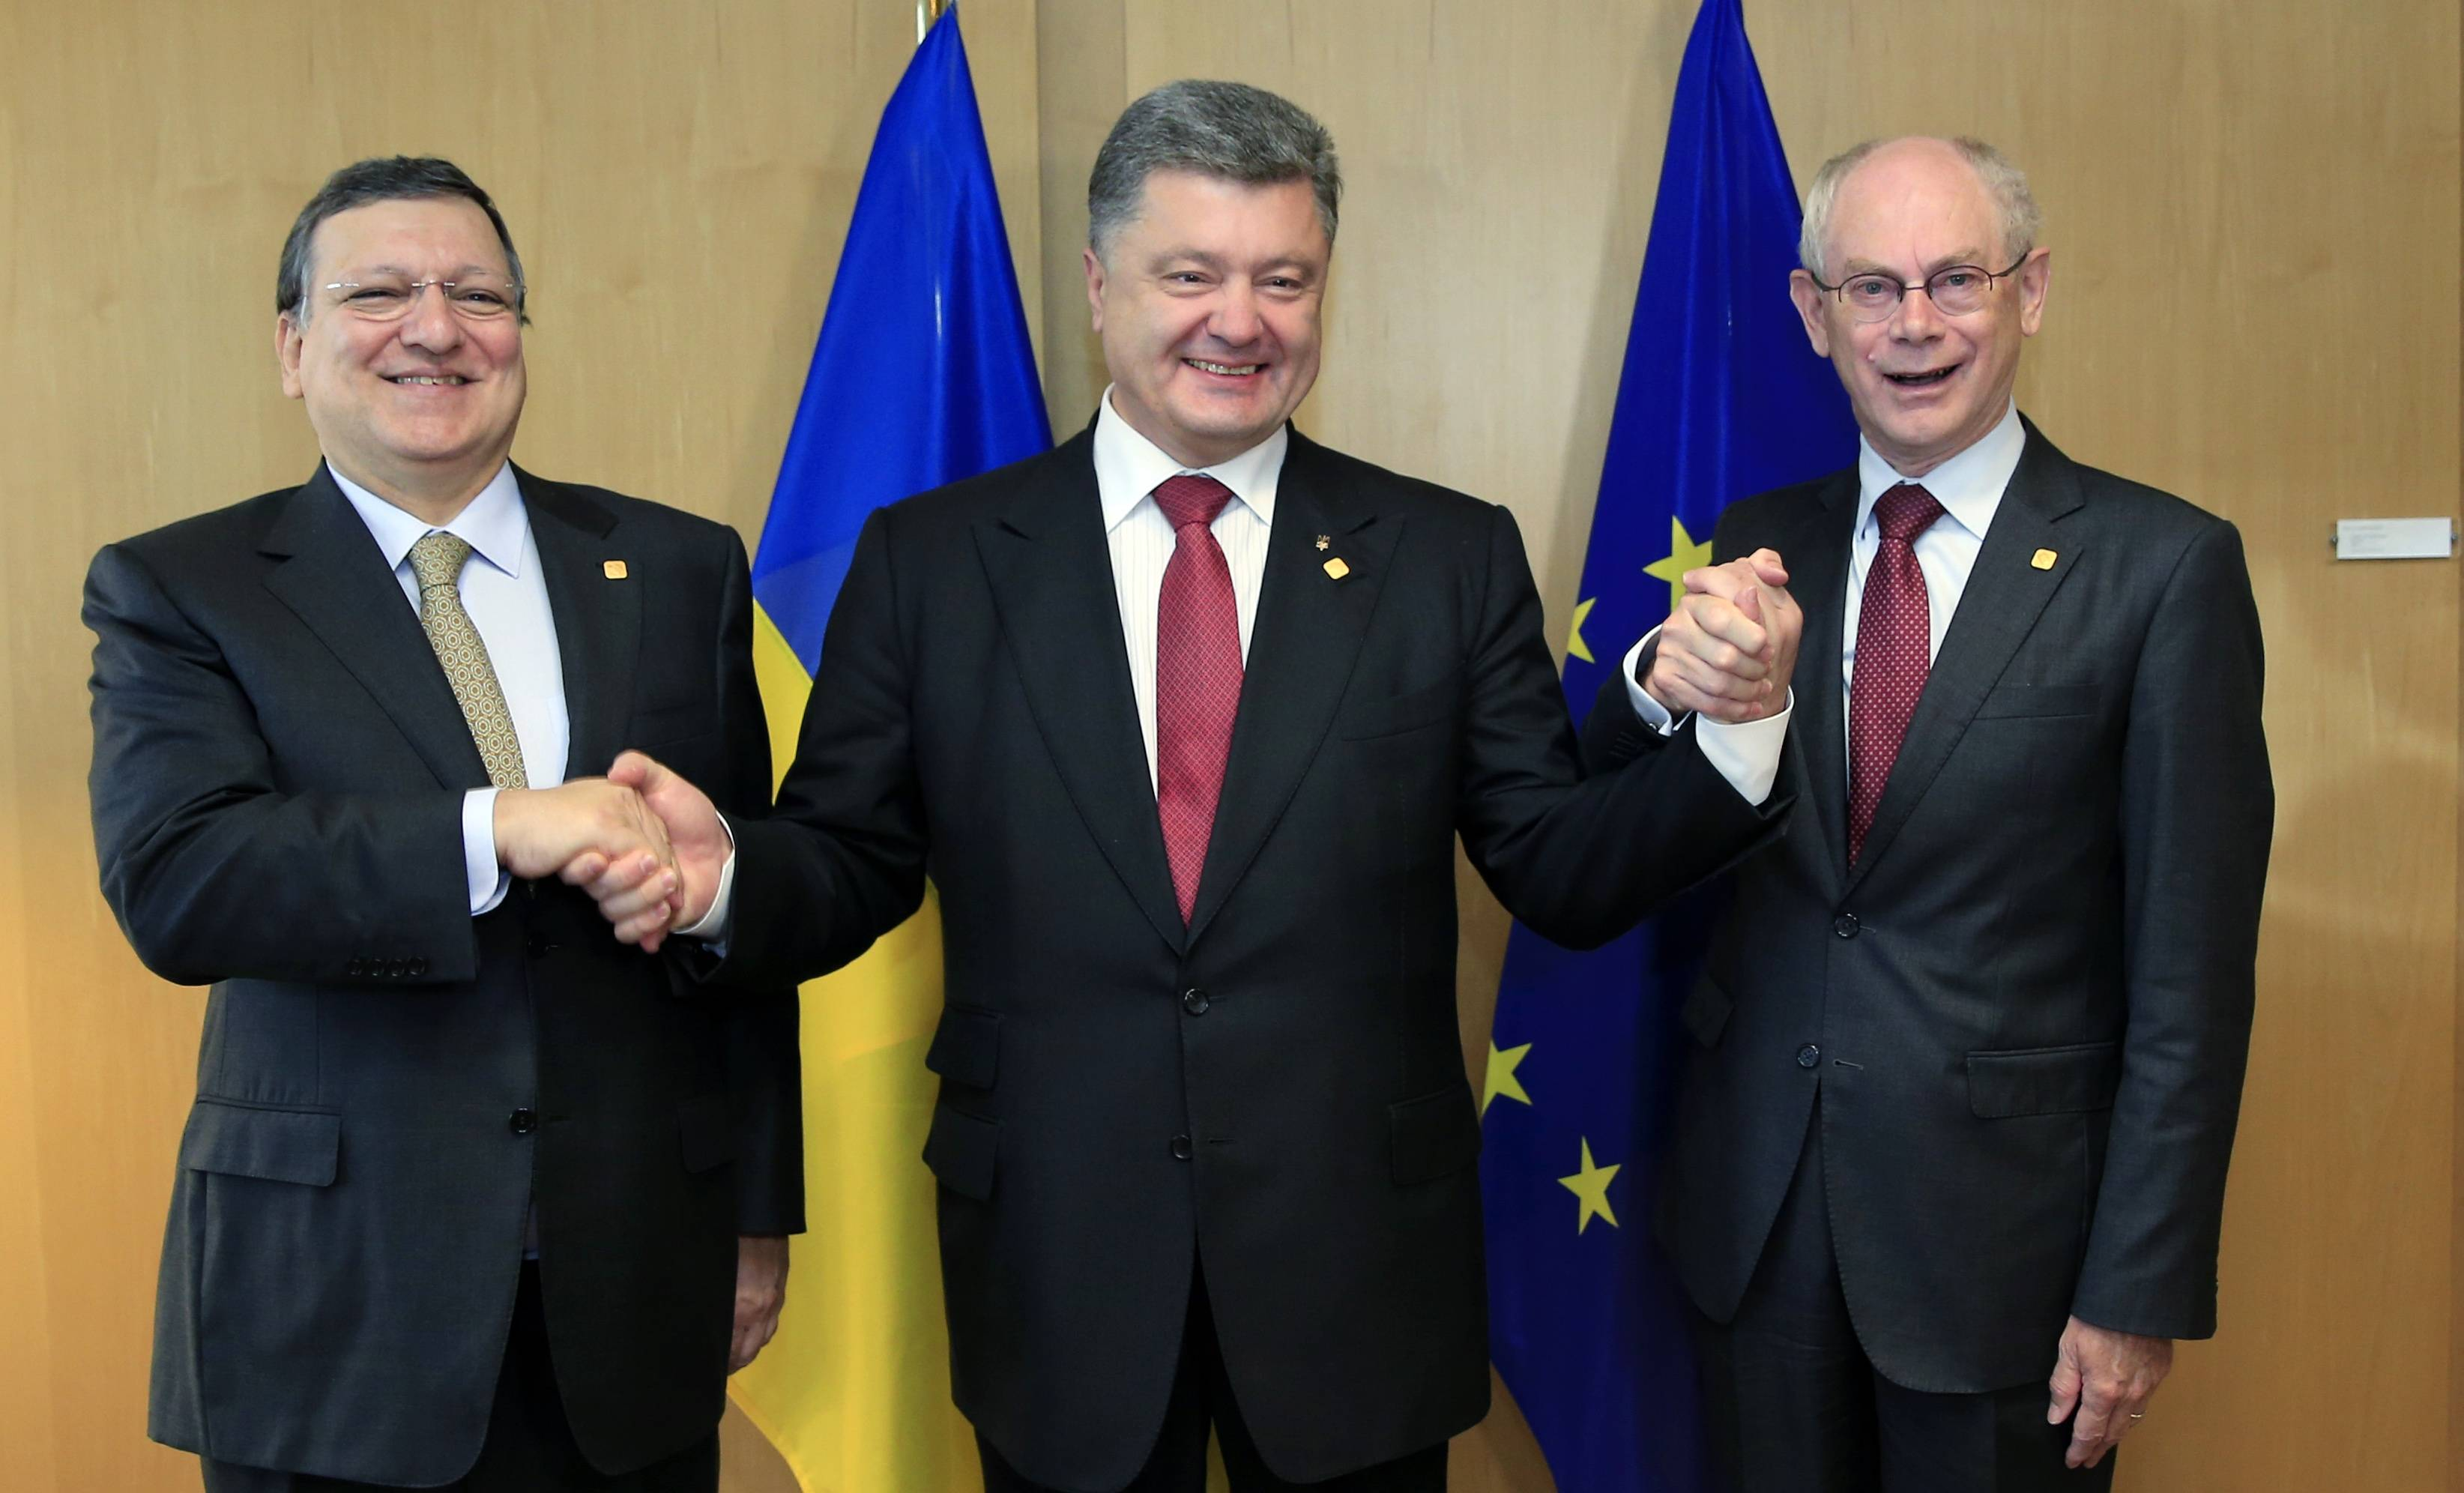 "Ukraine's President Petro Poroshenko, center, poses with European Commission President Jose Manuel Barroso, left, and European Council President Herman Van Rompuy during an EU Summit in Brussels on Friday. Ukrainian President Petro Poroshenko has signed up to a trade and economic pact with the European Union, saying it may be the ""most important day"" for his country since it became independent from the Soviet Union."